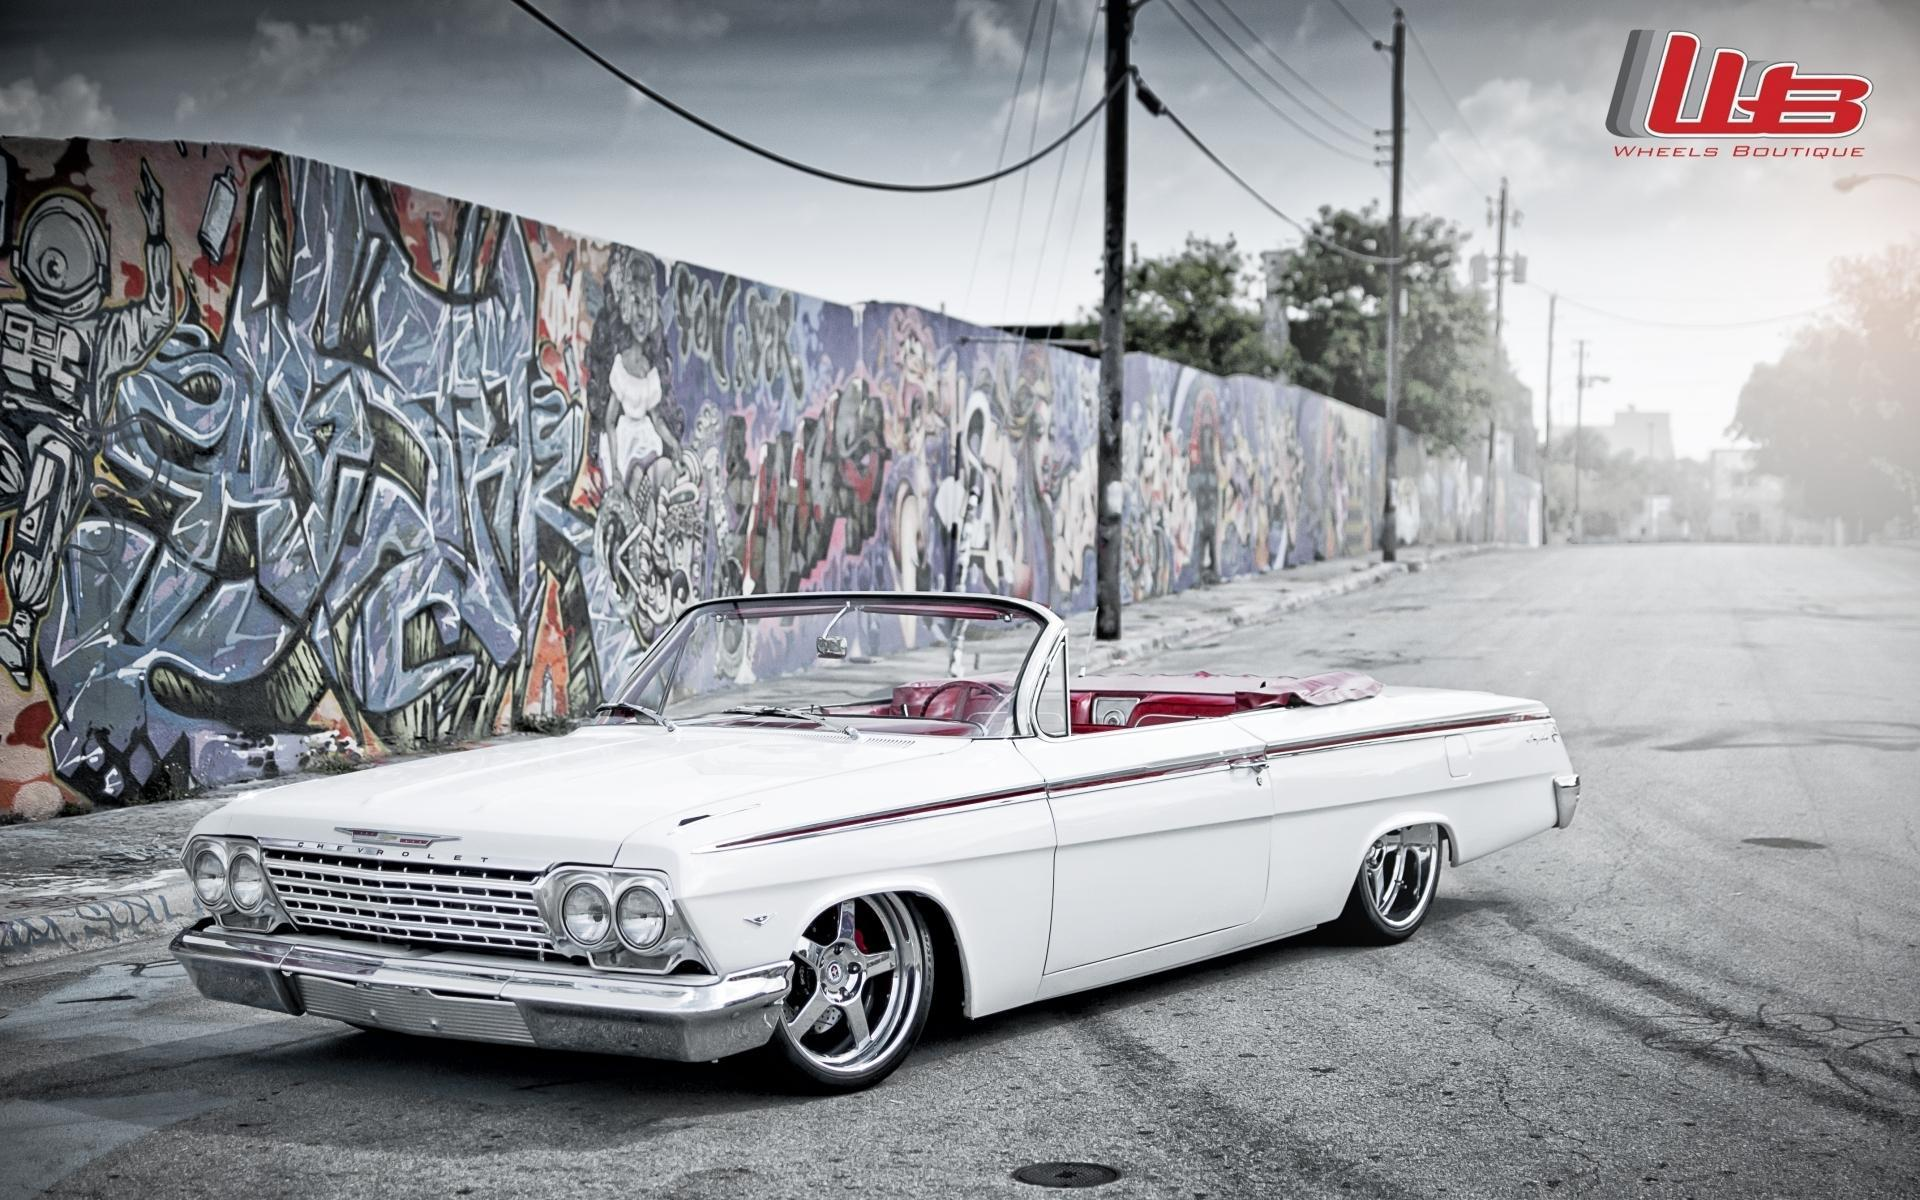 Chevrolet Impala HD desktop wallpapers : Widescreen : High